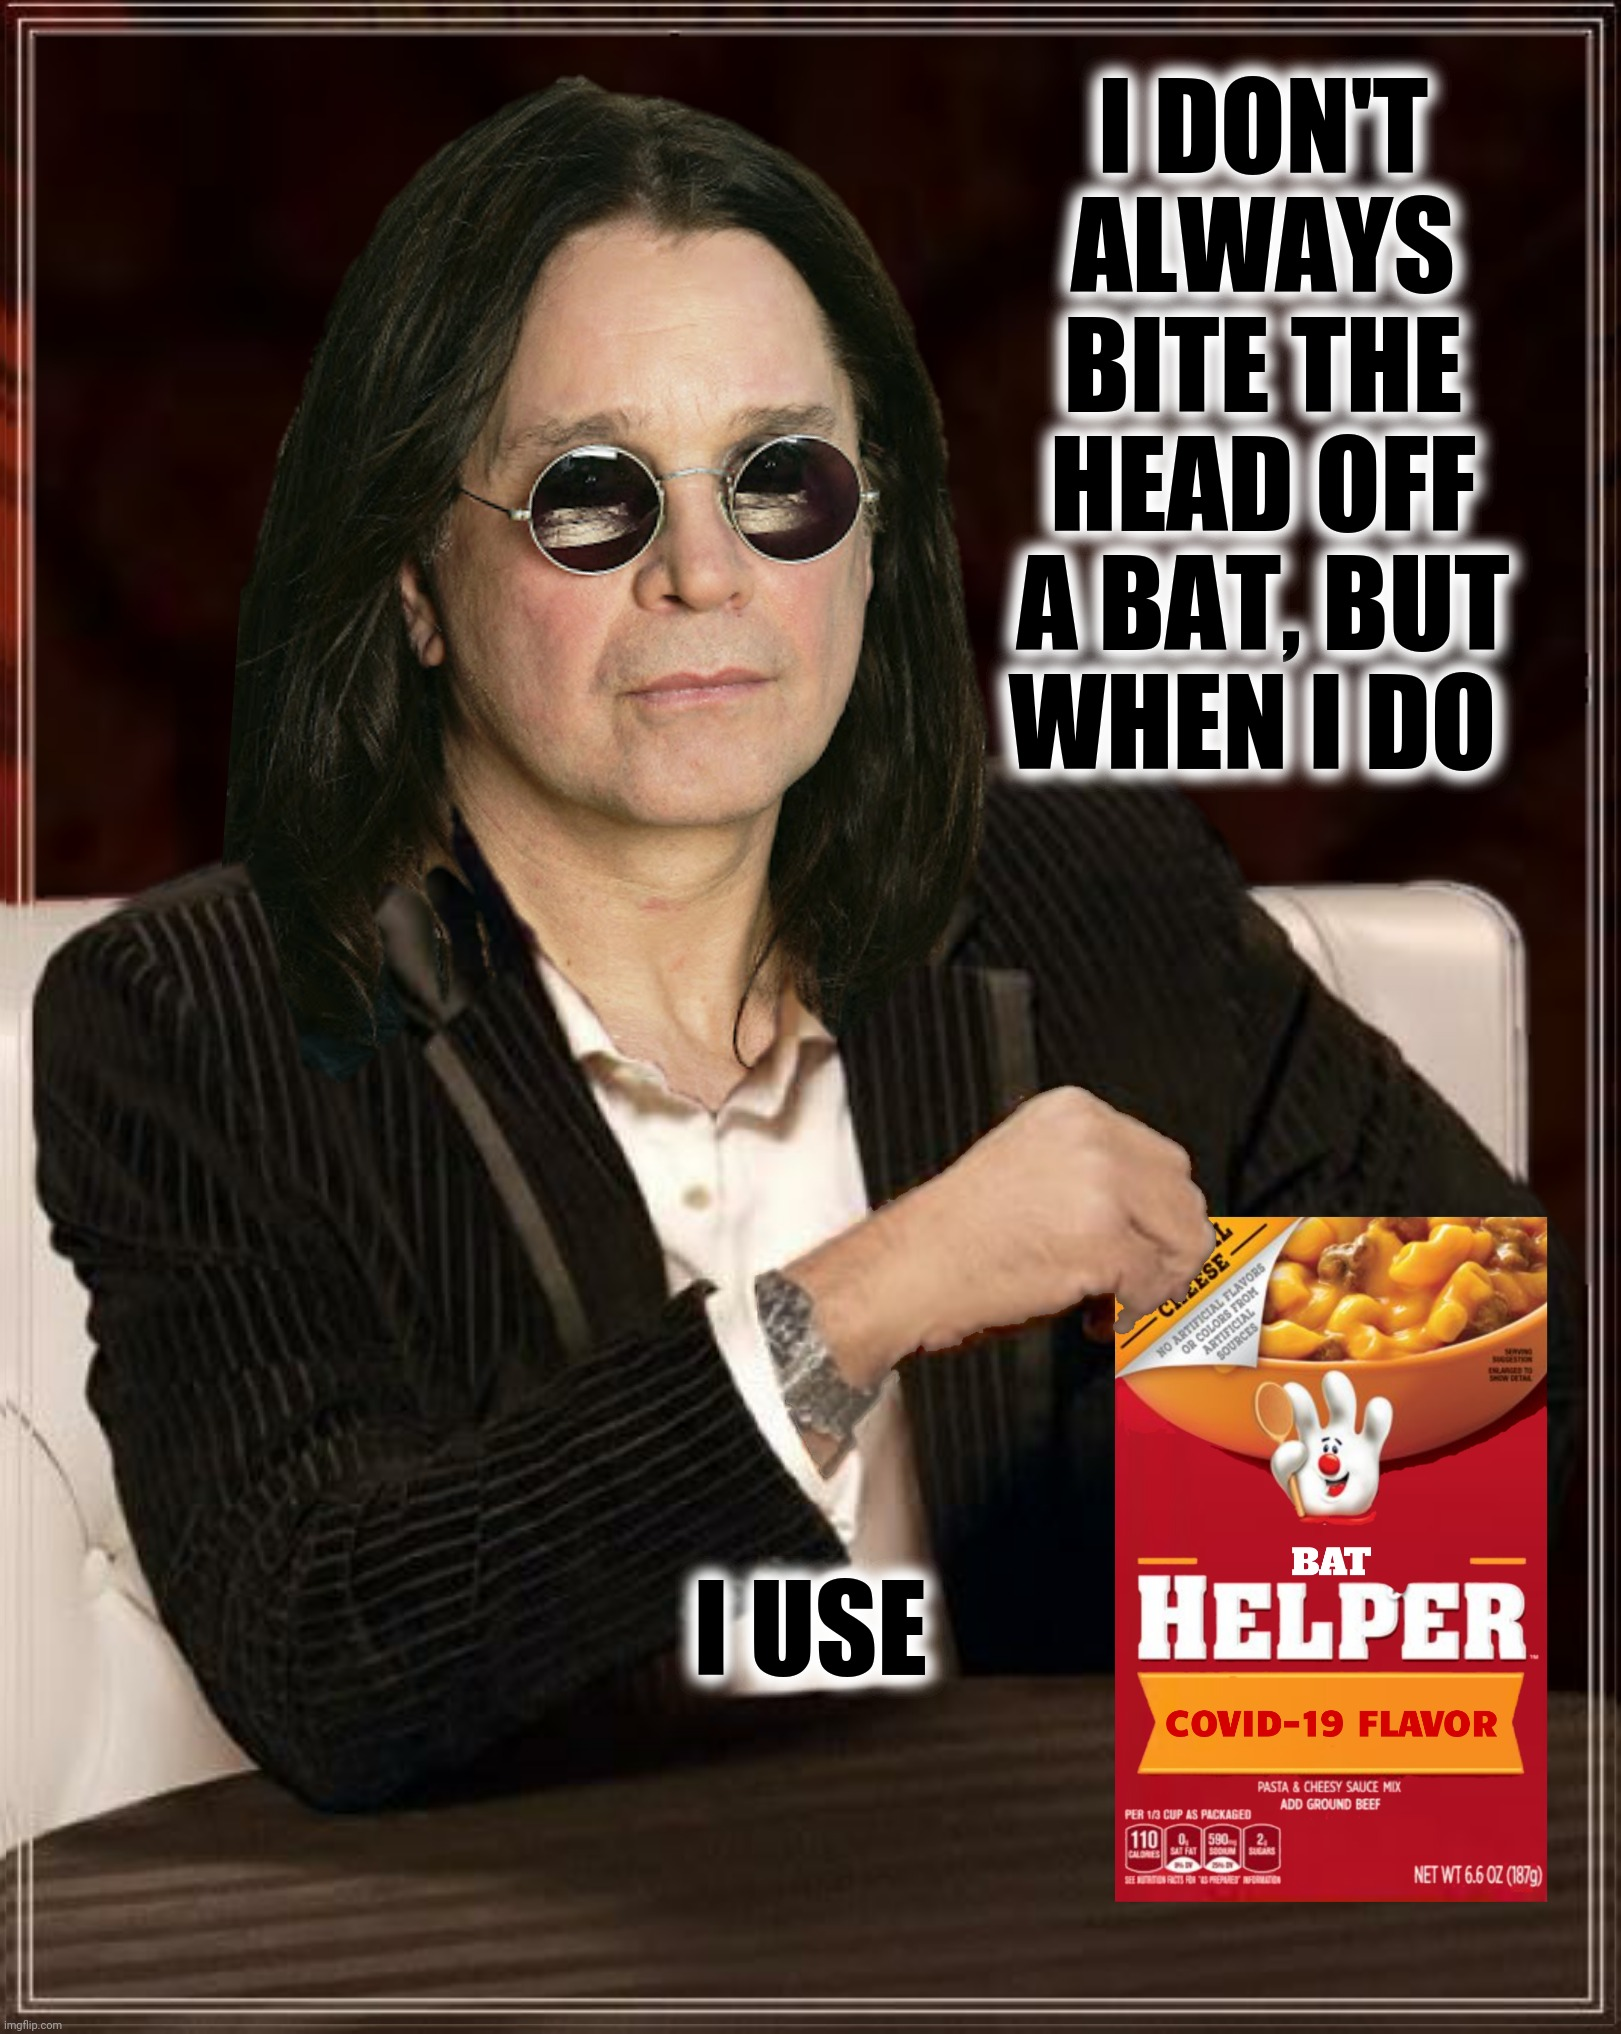 Bad Photoshop Sunday presents:  Mama's gonna worry, I been a bat, bat boy |  I DON'T ALWAYS BITE THE HEAD OFF A BAT, BUT WHEN I DO; I USE | image tagged in bad photoshop sunday,the most interesting man in the world,ozzy osbourne,hamburger helper,bat | made w/ Imgflip meme maker